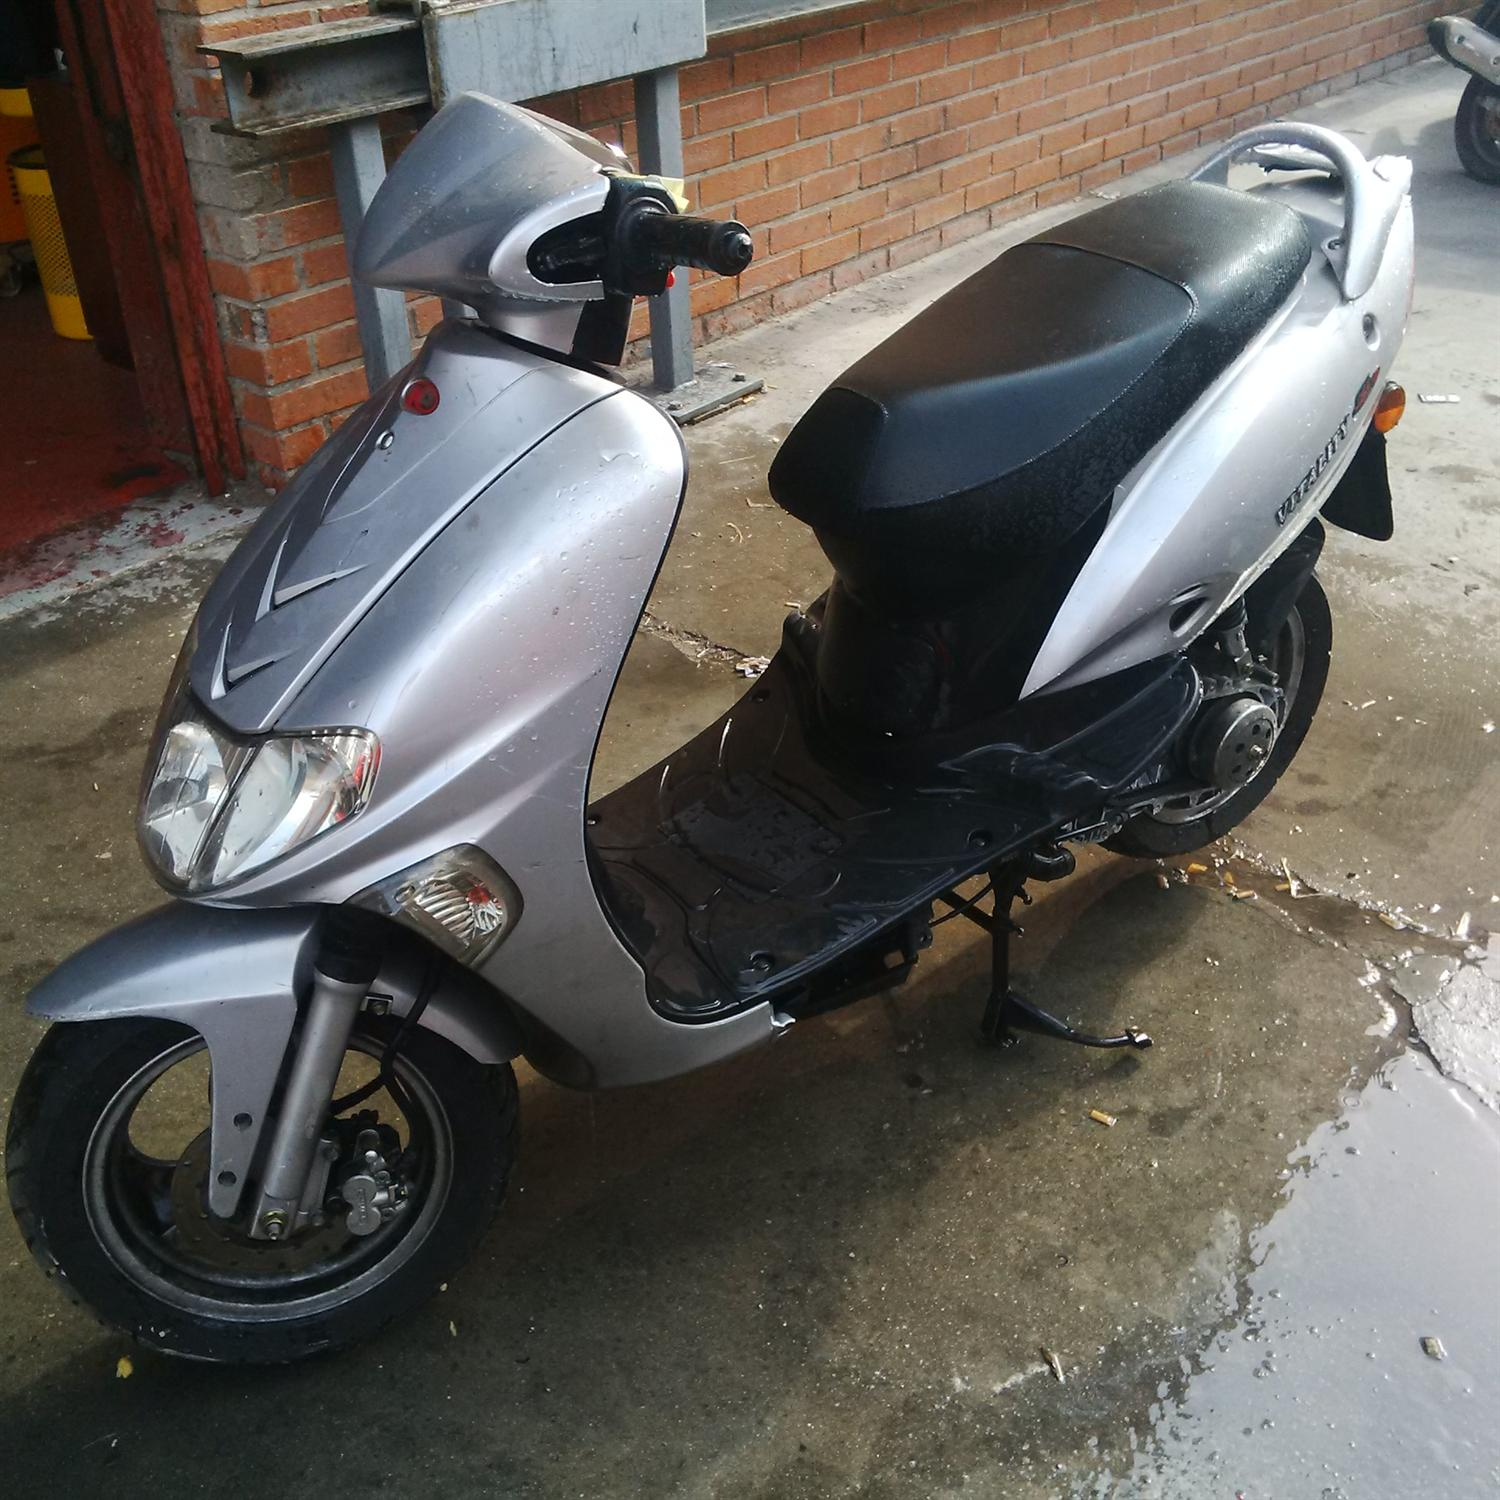 Kymco Agility 50 images #100900